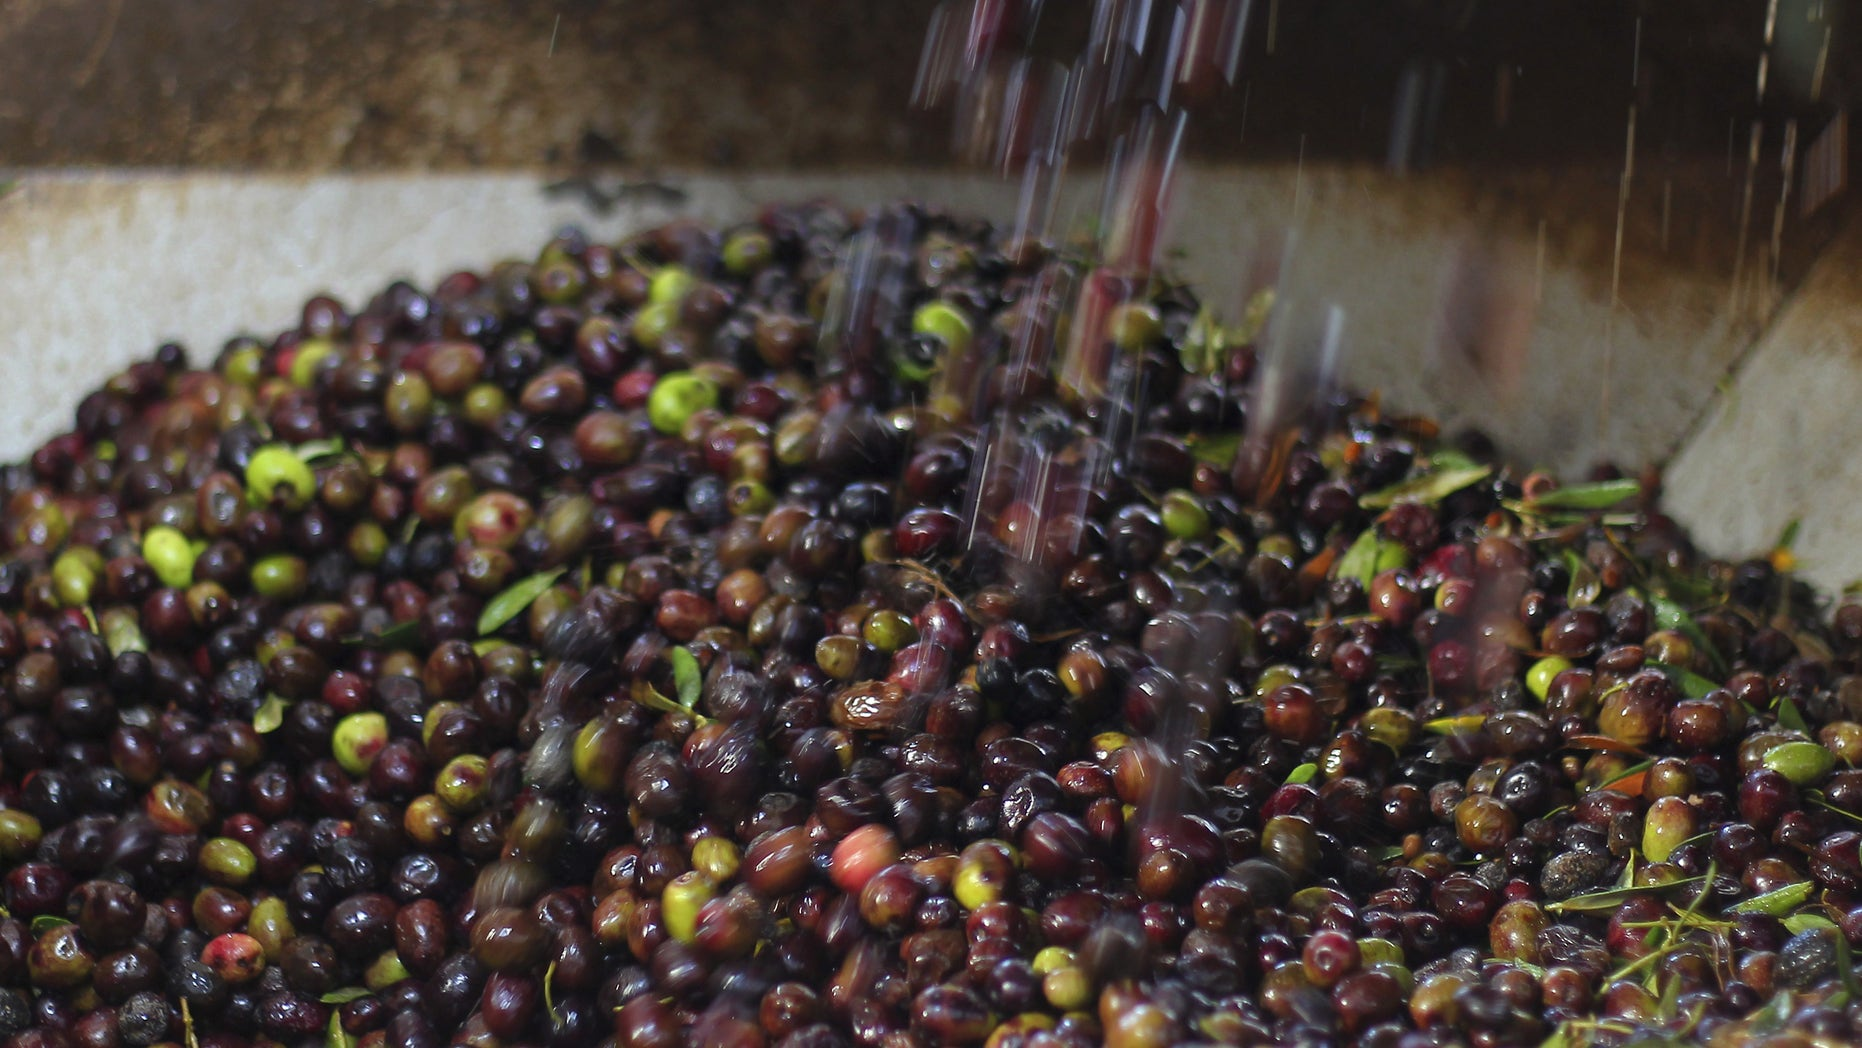 Olives are poured into a grinding machine before they are pressed to be made into oil.